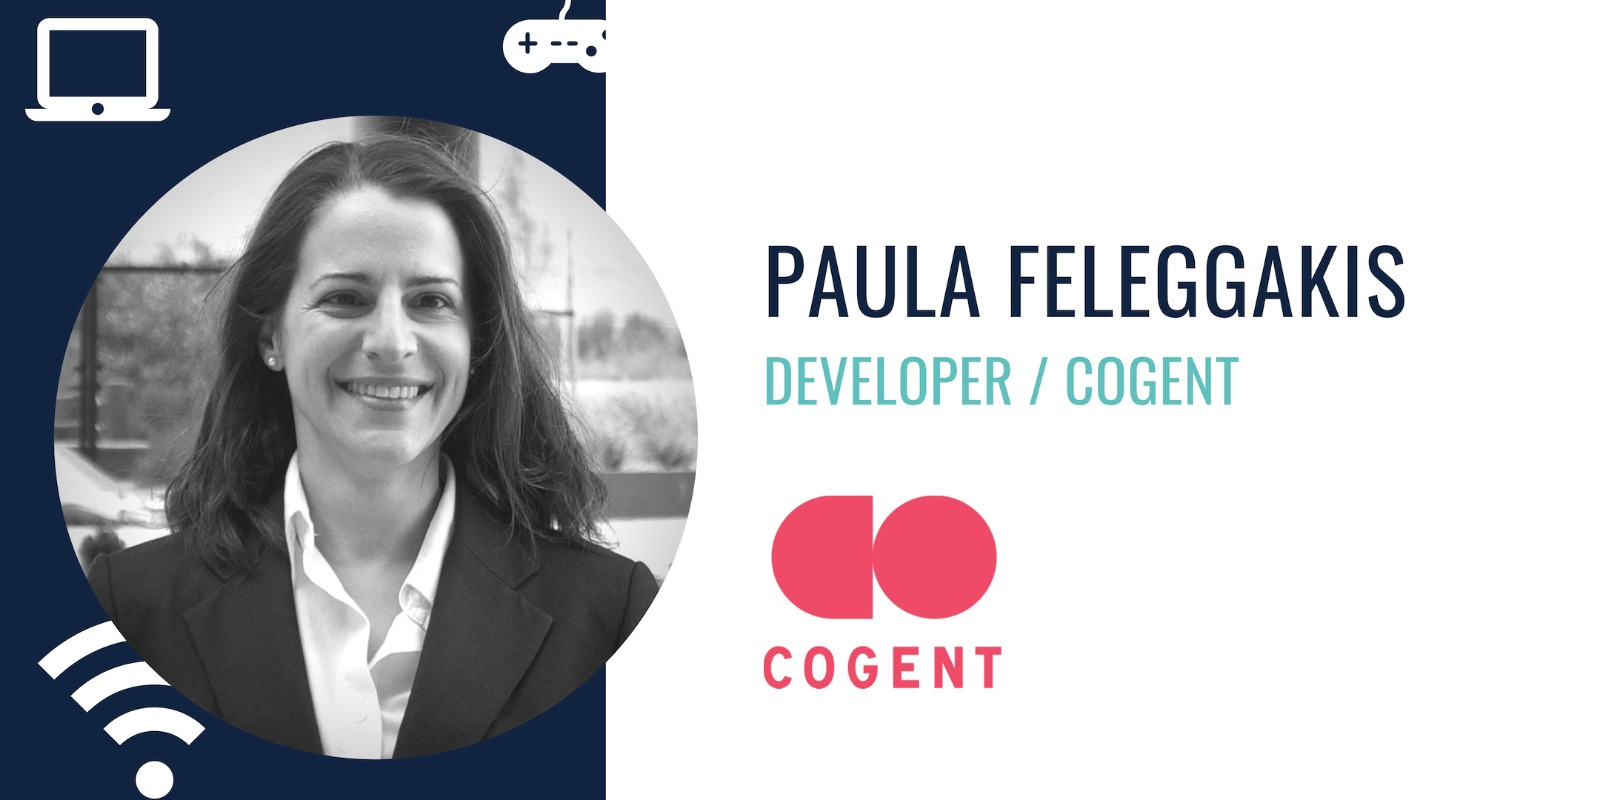 Paula is a recent career changer, making the switch from Electrical engineer to Software Developer. She loves the challenge of solving difficult problems alongside inspiring and honest human beings. Mum of two and learner for life, Paula still enjoys living in (what's left) of the analog world.